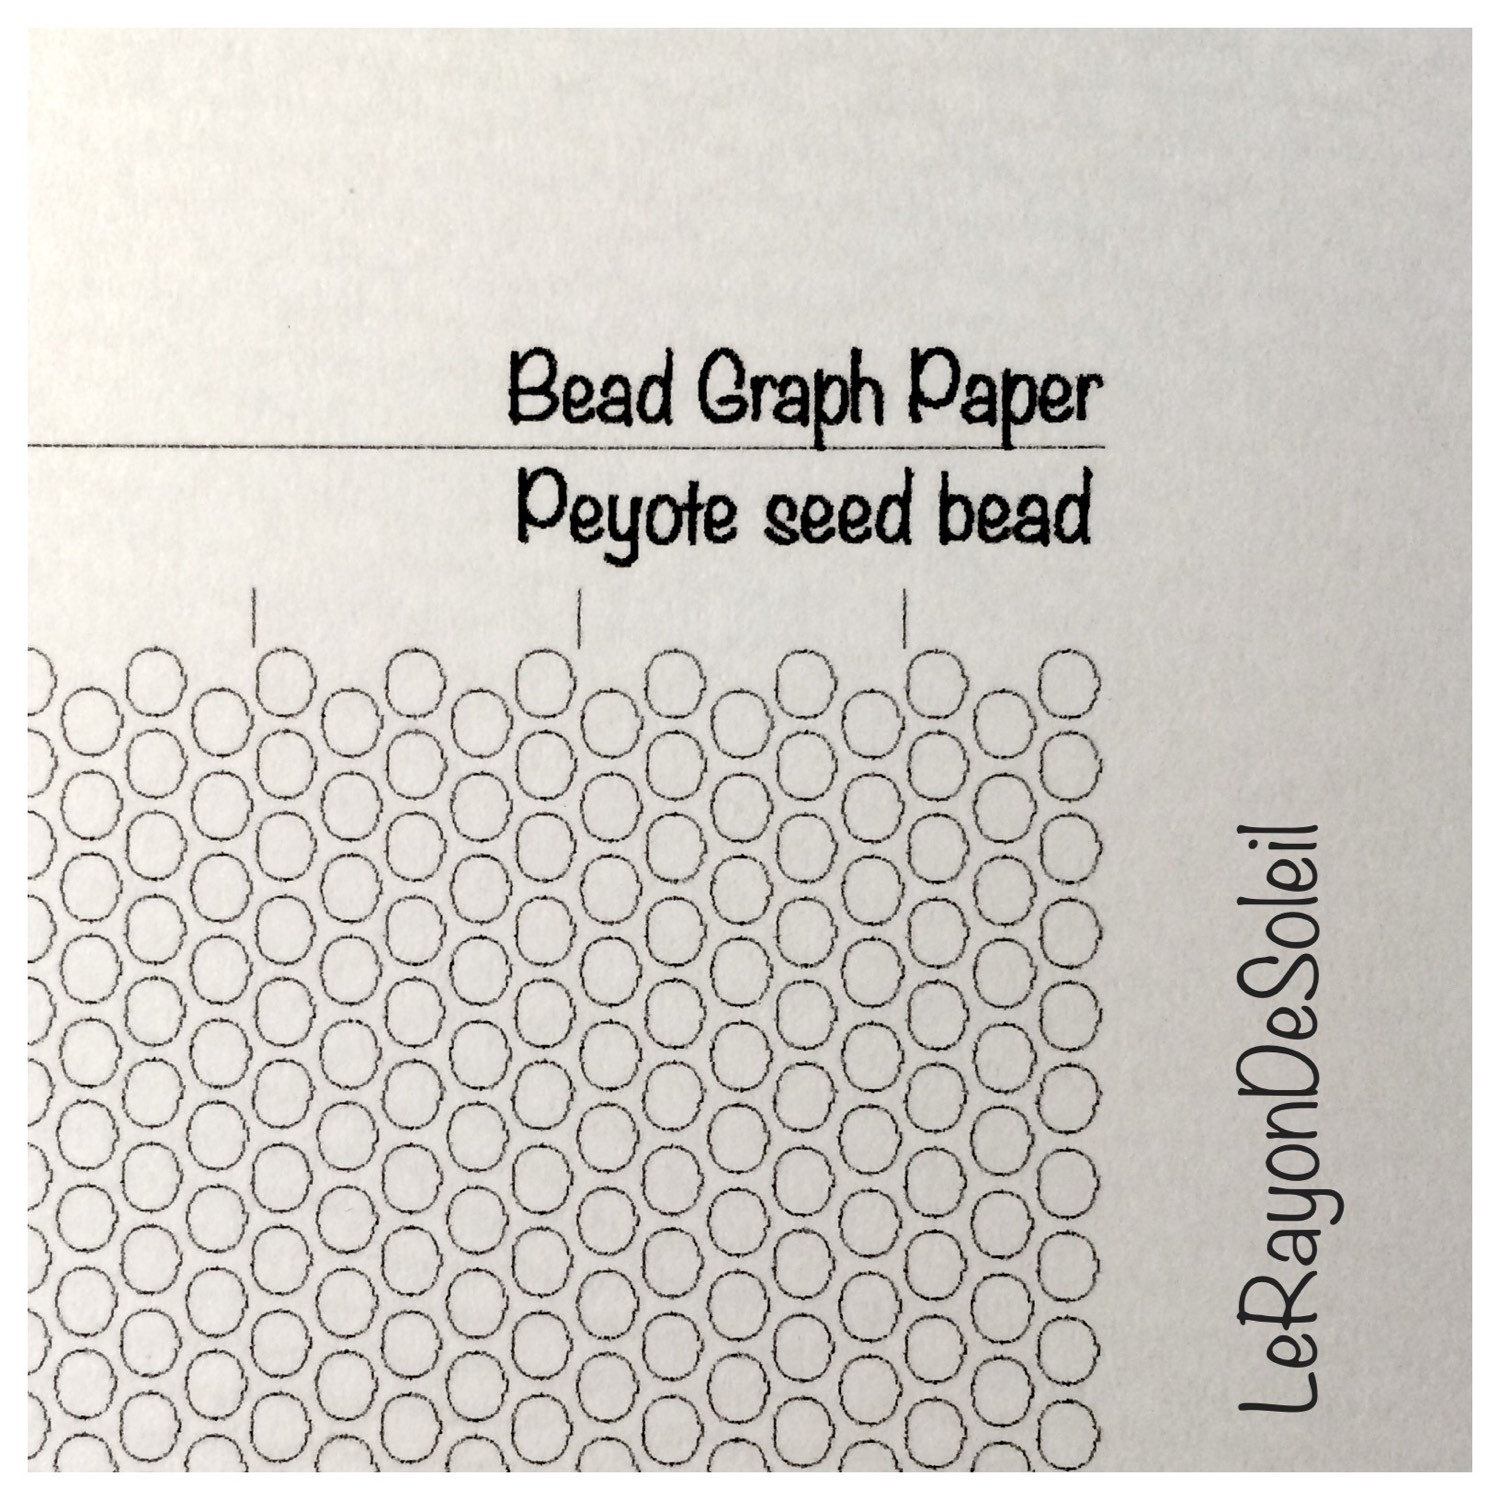 Peyote Seed Bead Graph Paper Peyote Template For Seed Beads